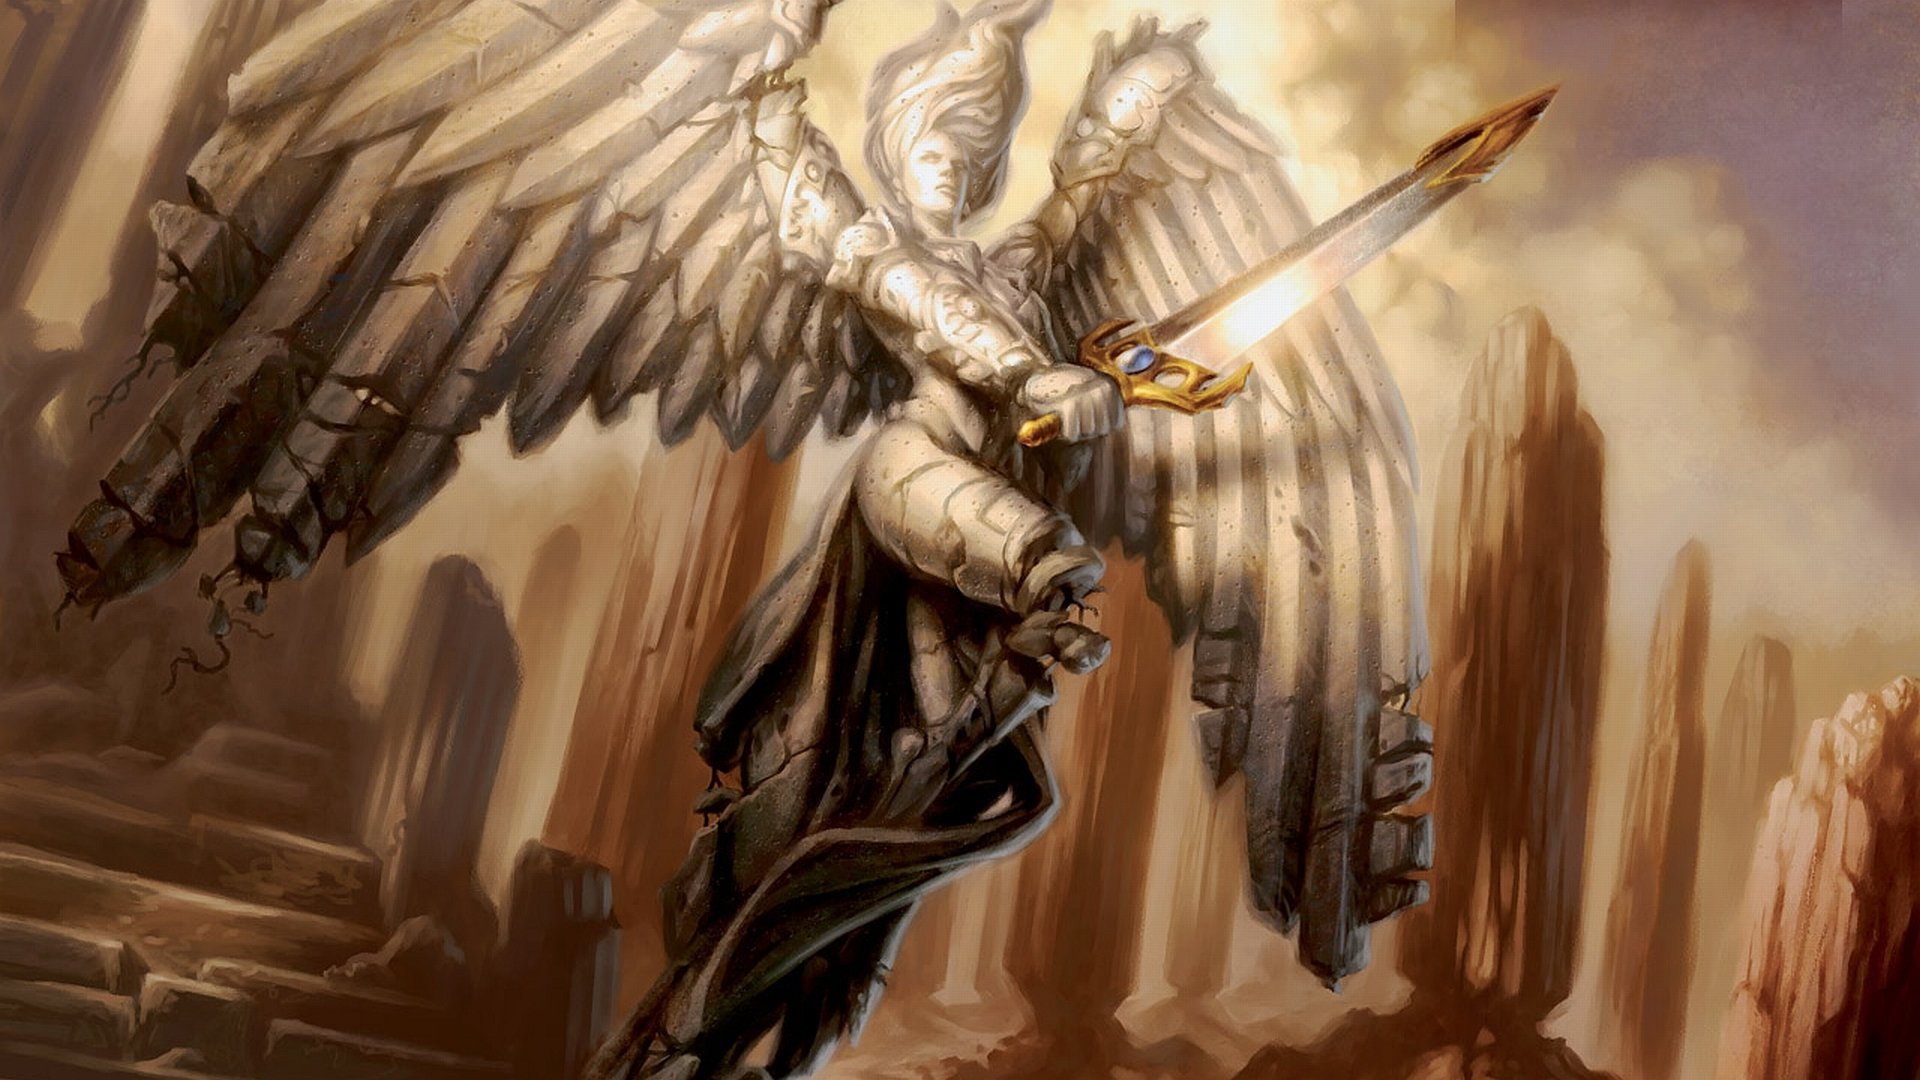 Game - Magic: The Gathering  Dark Gothic Angel Wings Sword Wallpaper